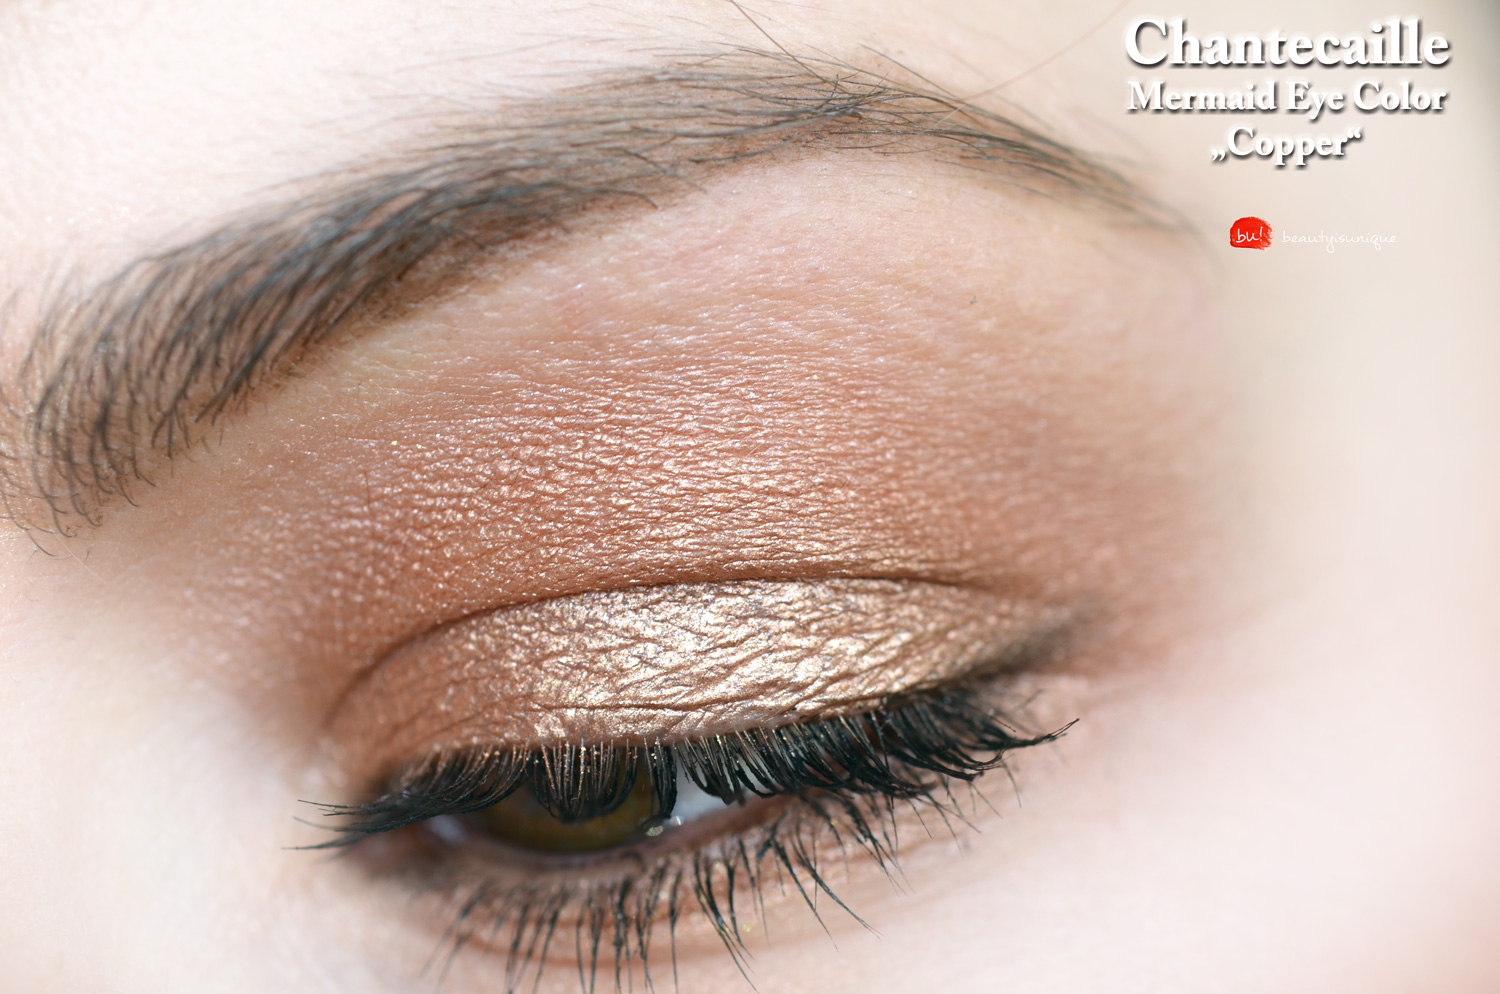 chantecaille-copper-mermaid-eye-color